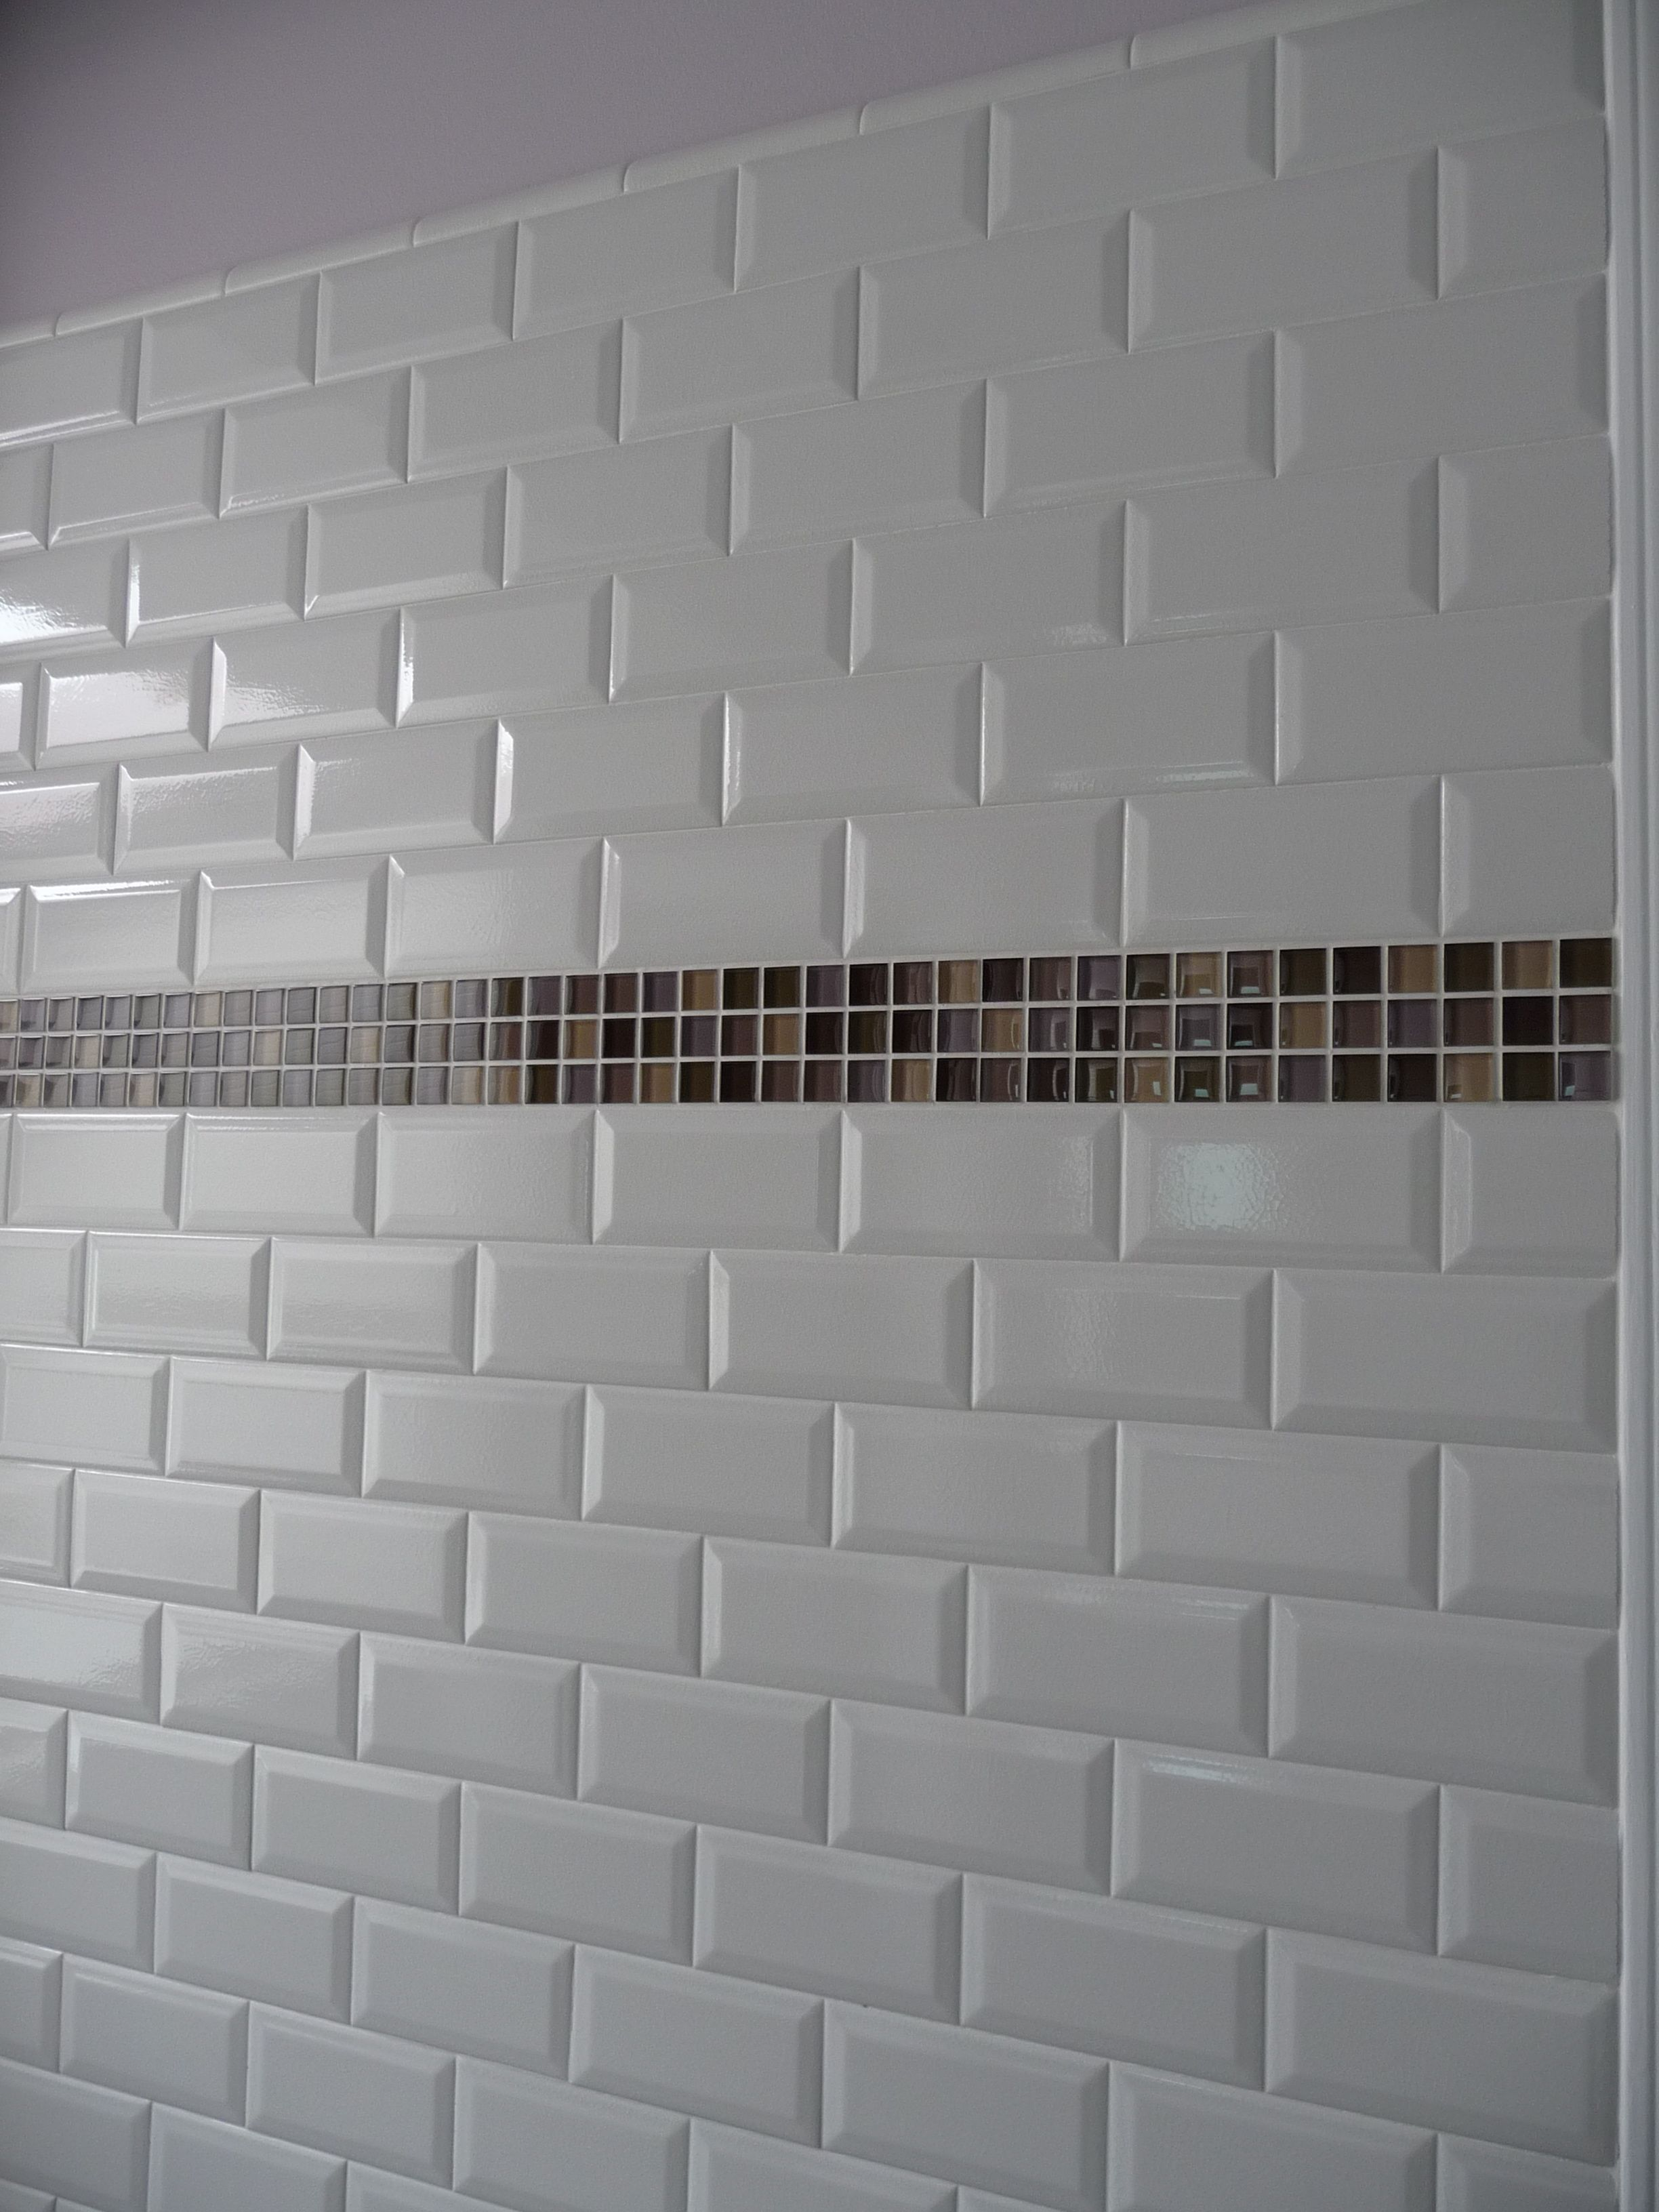 ... Beveled Marble Daltile Mosaic Floor Vinyl Terra Cotta Spanish Modern  Flooring Pictures Wall Metal Del Ideas Tiles In A Shower What Are Subway  Tiles